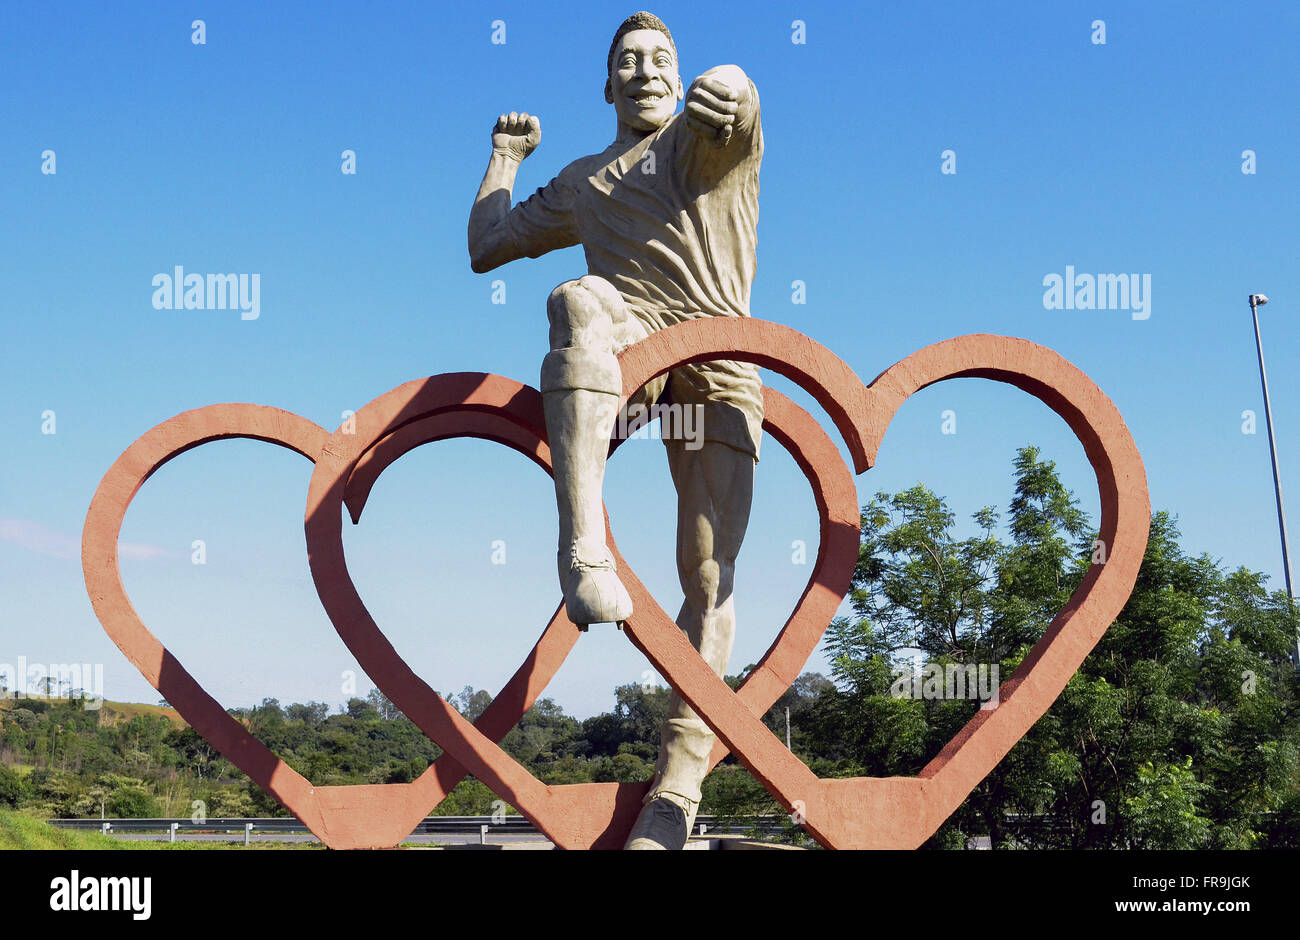 Statue in honor of the football player Pele - Stock Image